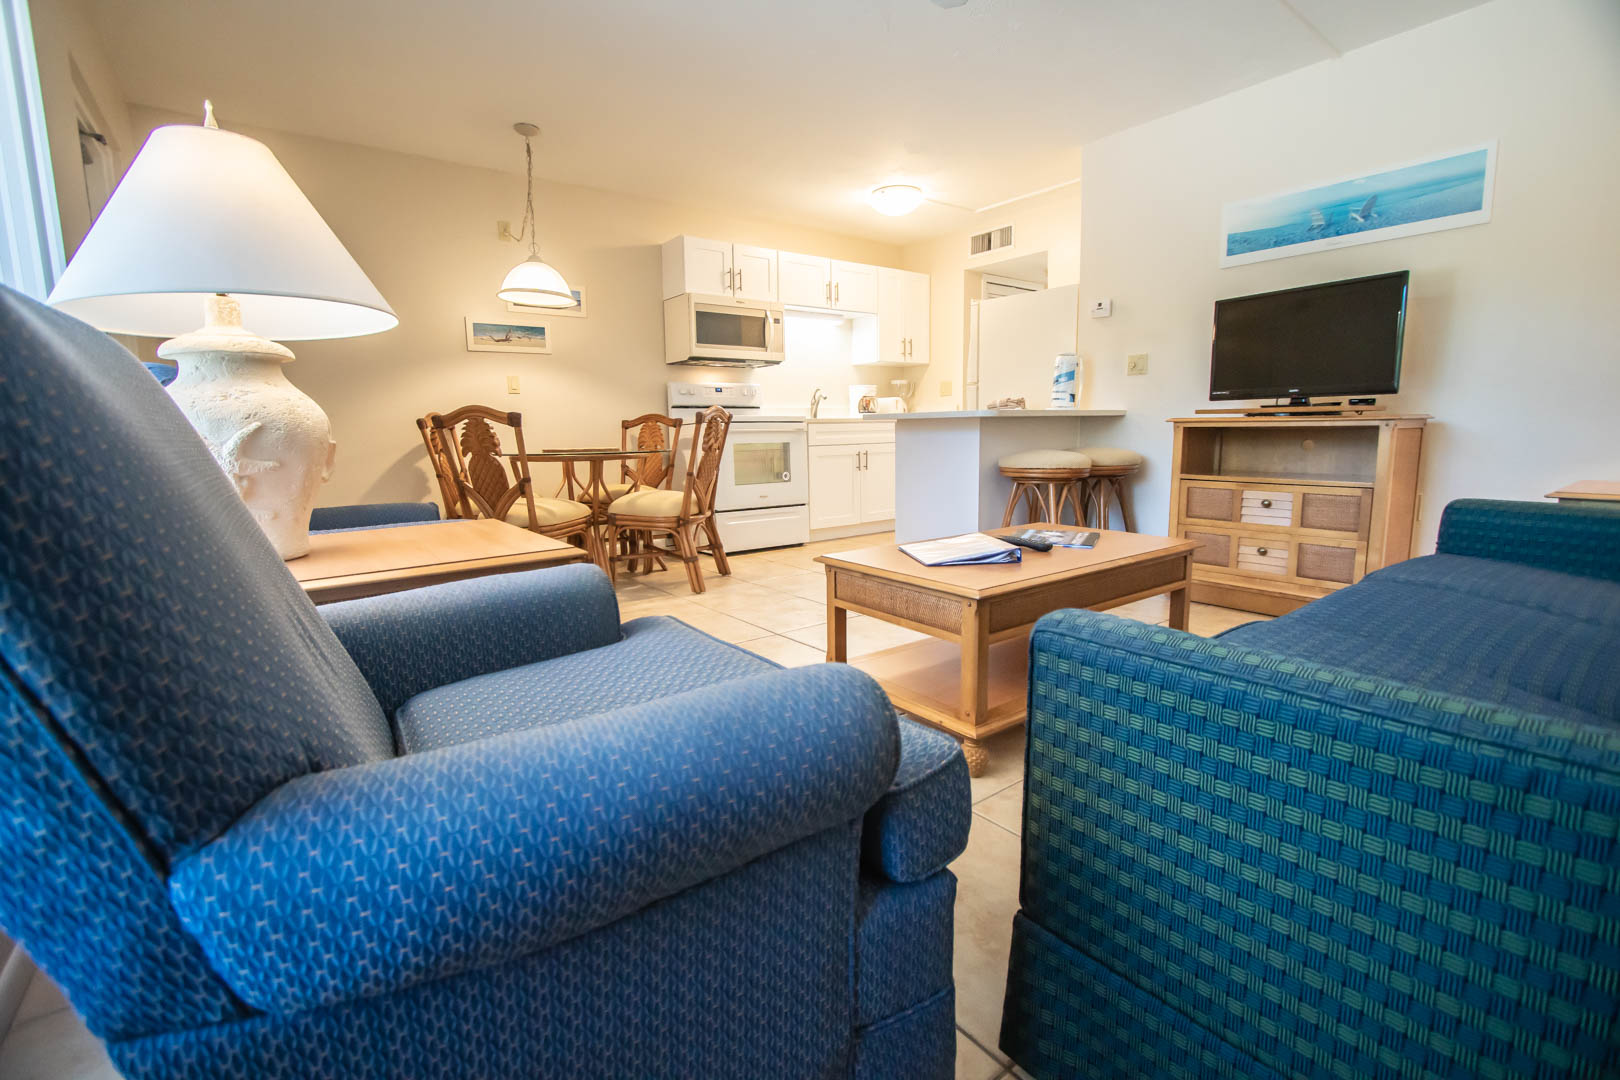 A spacious living room and kitchen view at VRI's Windward Passage Resort in Fort Myers Beach, Florida.